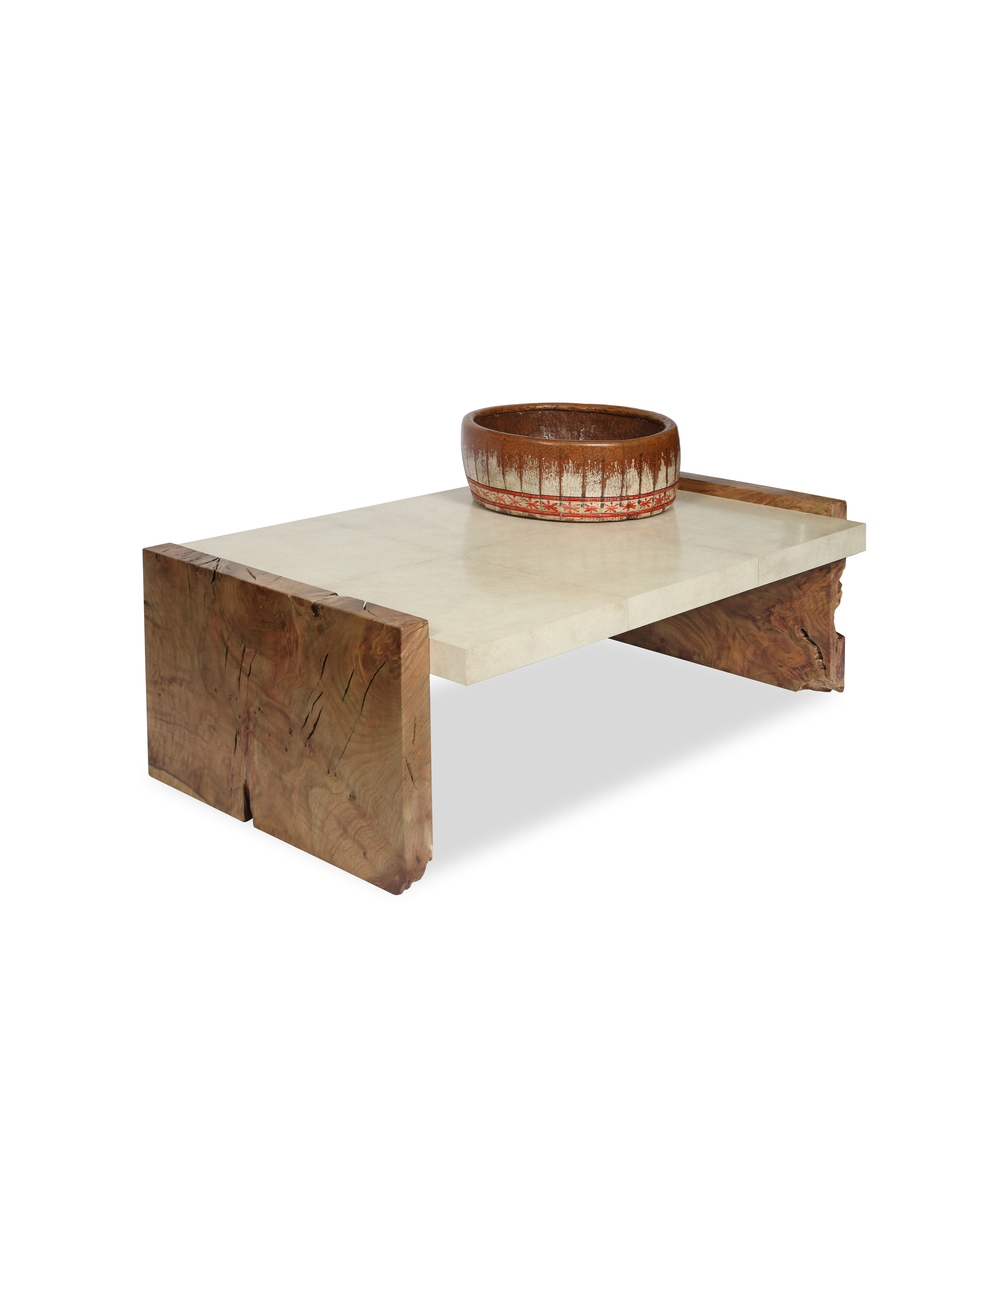 Walnut Parchment Cocktail Table.jpg